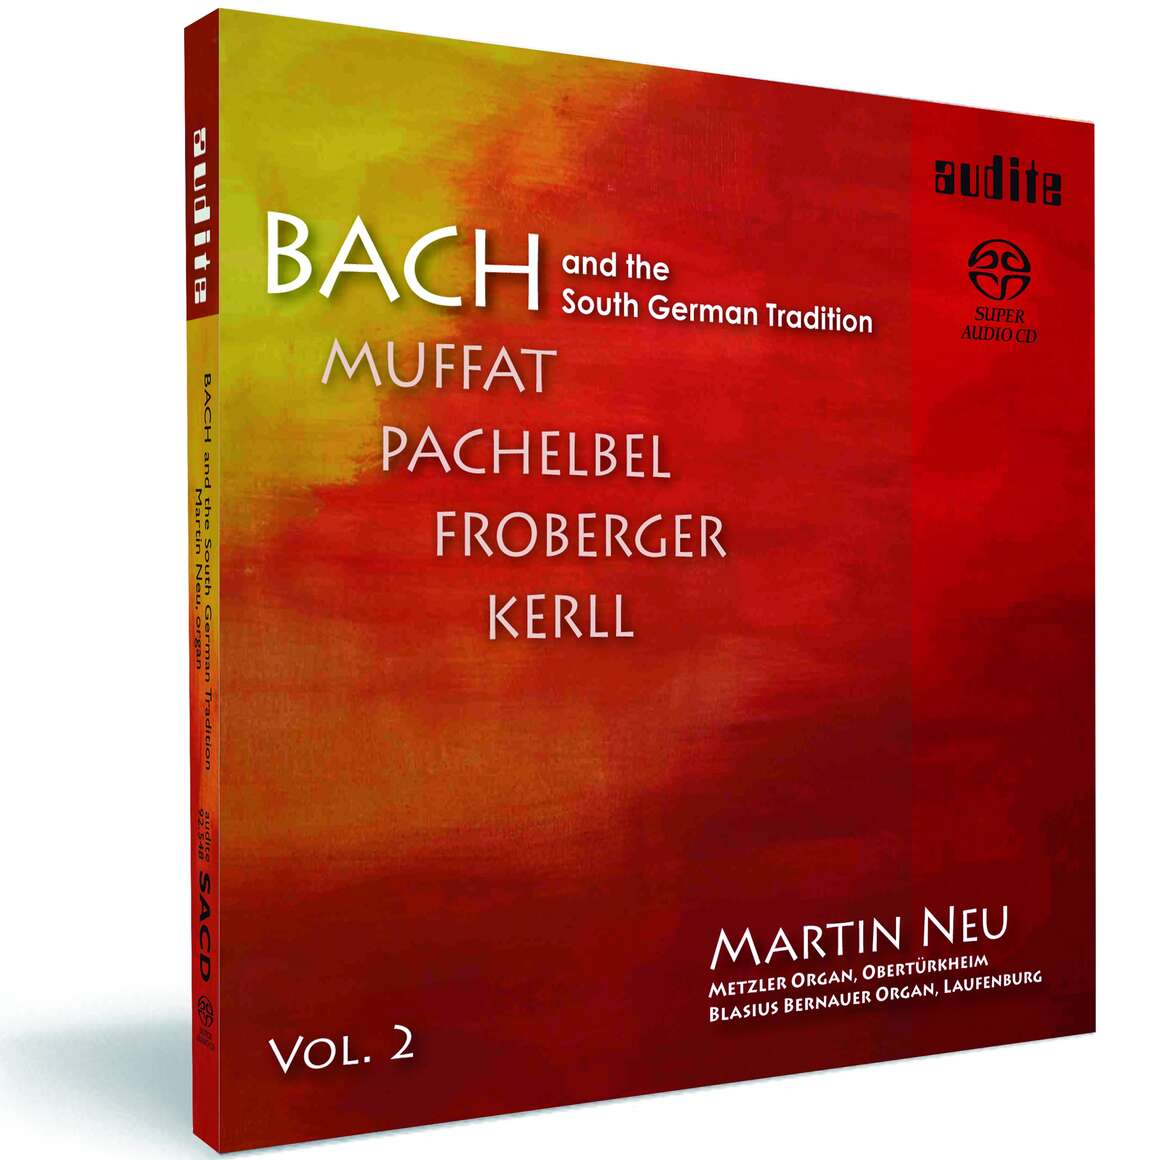 Bach and the South German Tradition Vol. II